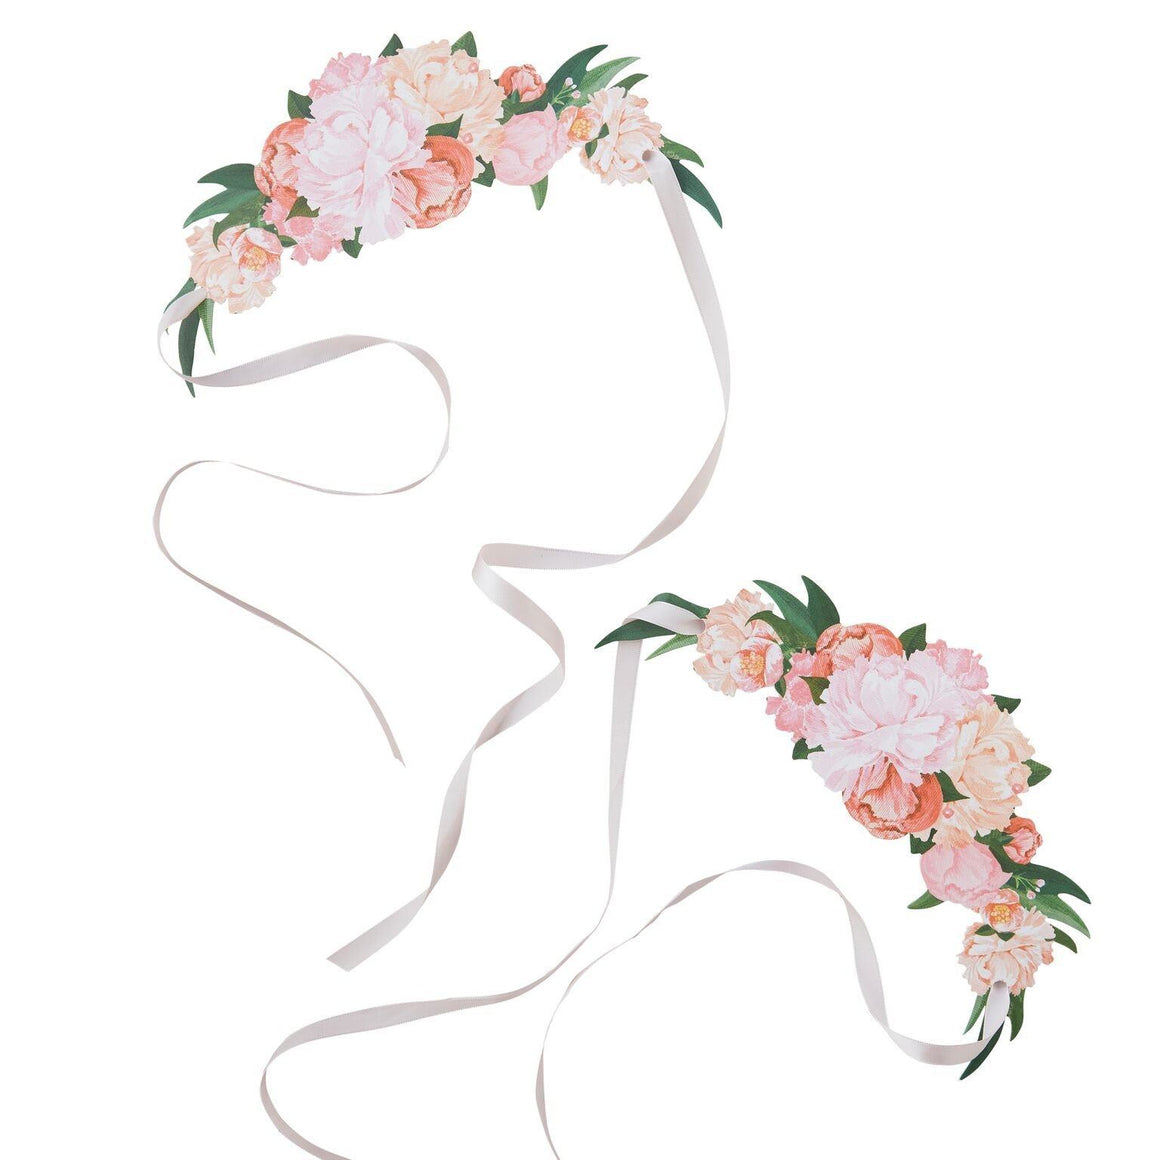 PARTY HATS - FLORAL BOHO TIARA 8 PACK